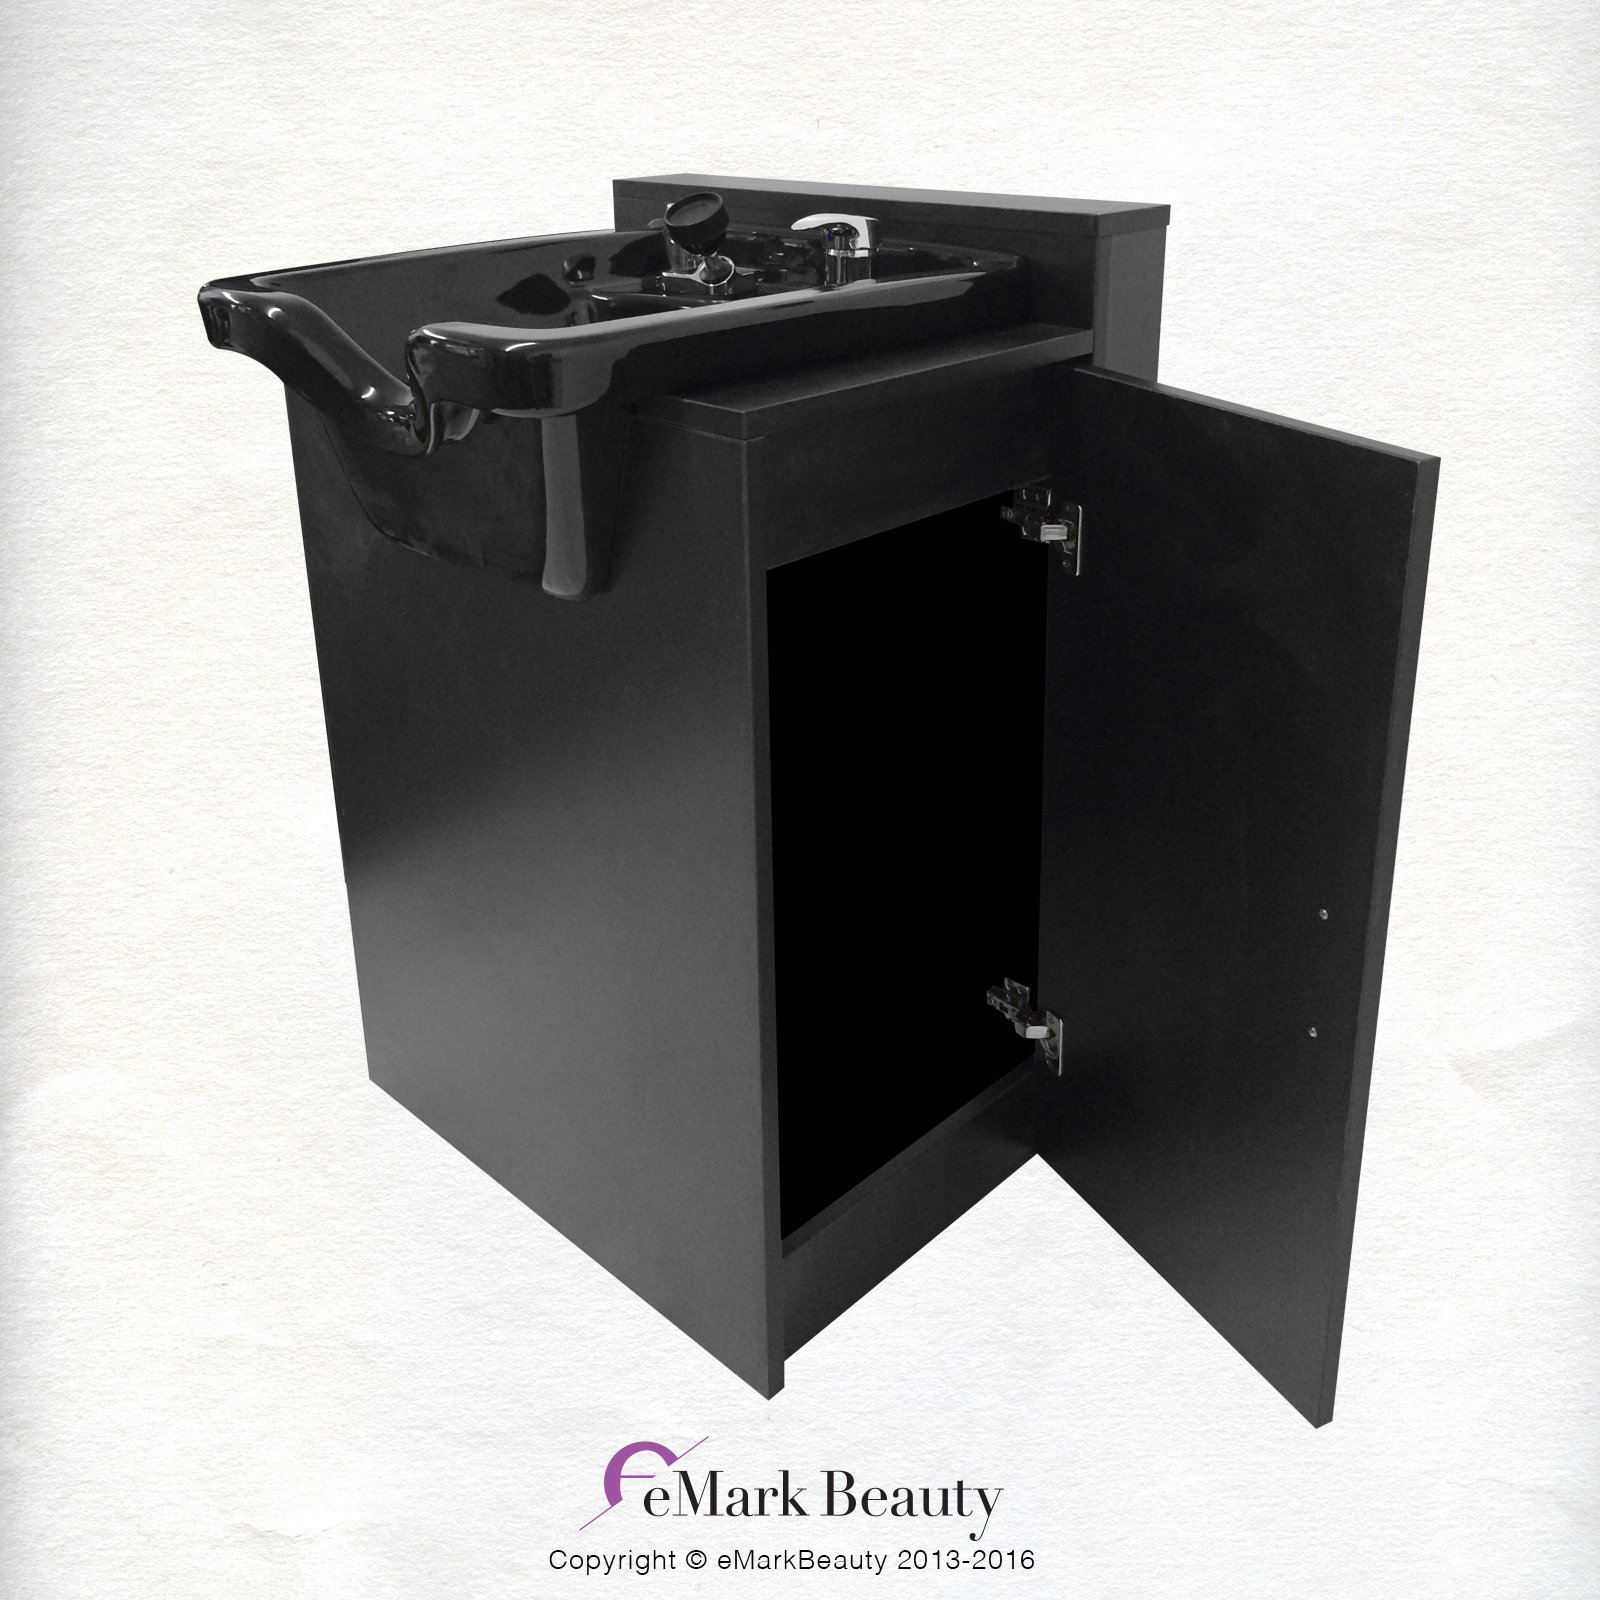 Black Square CERAMIC Beauty Salon Shampoo Bowl Floor Cabinet w/ Storage B41-B41C by Beauty Salon Shampoo Bowl